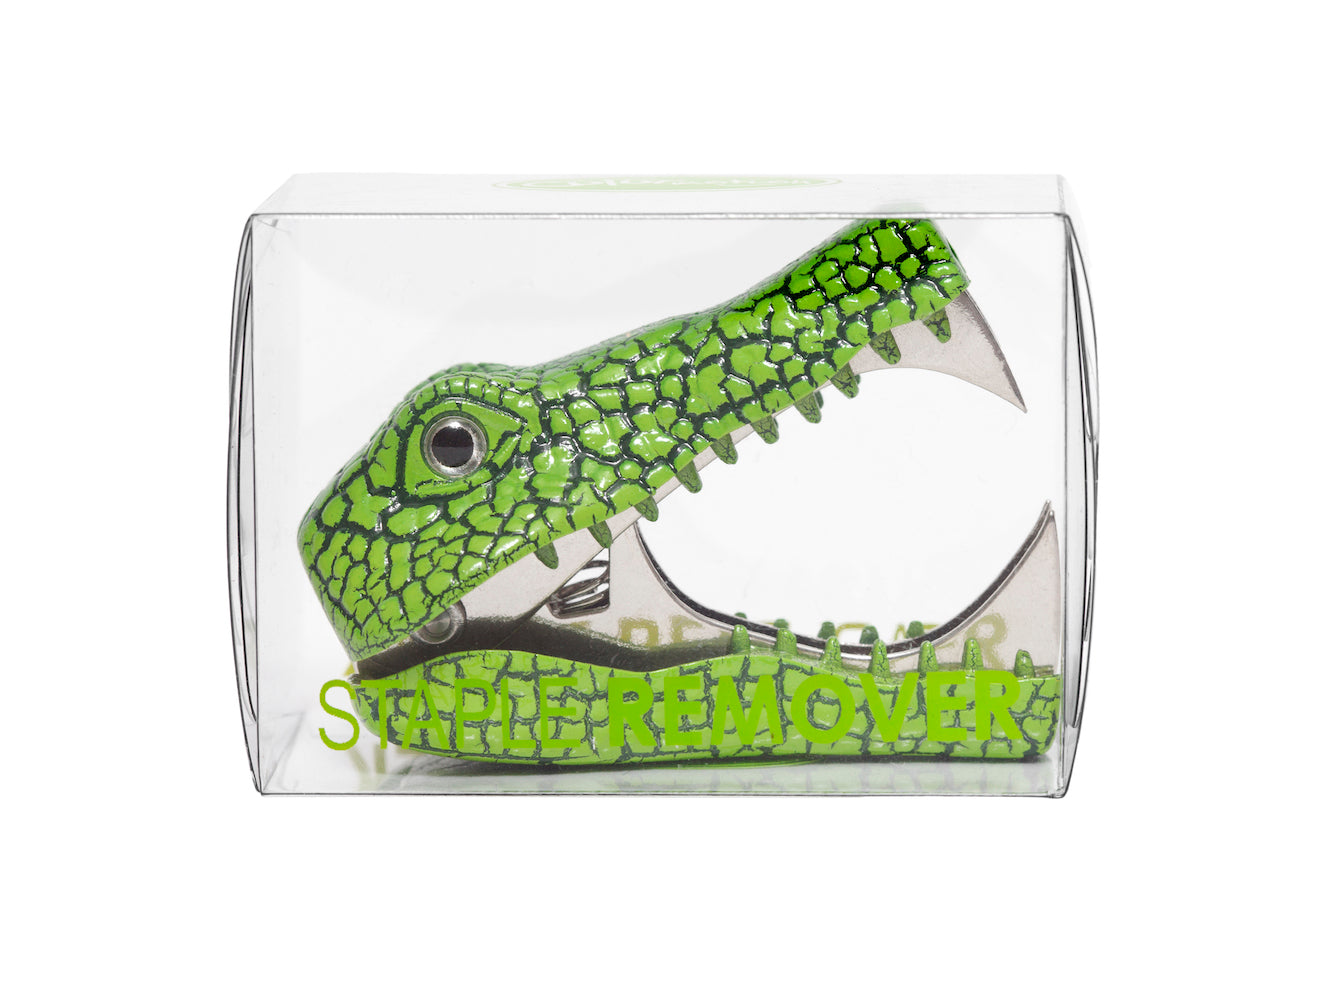 Staple Remover - Crocodile